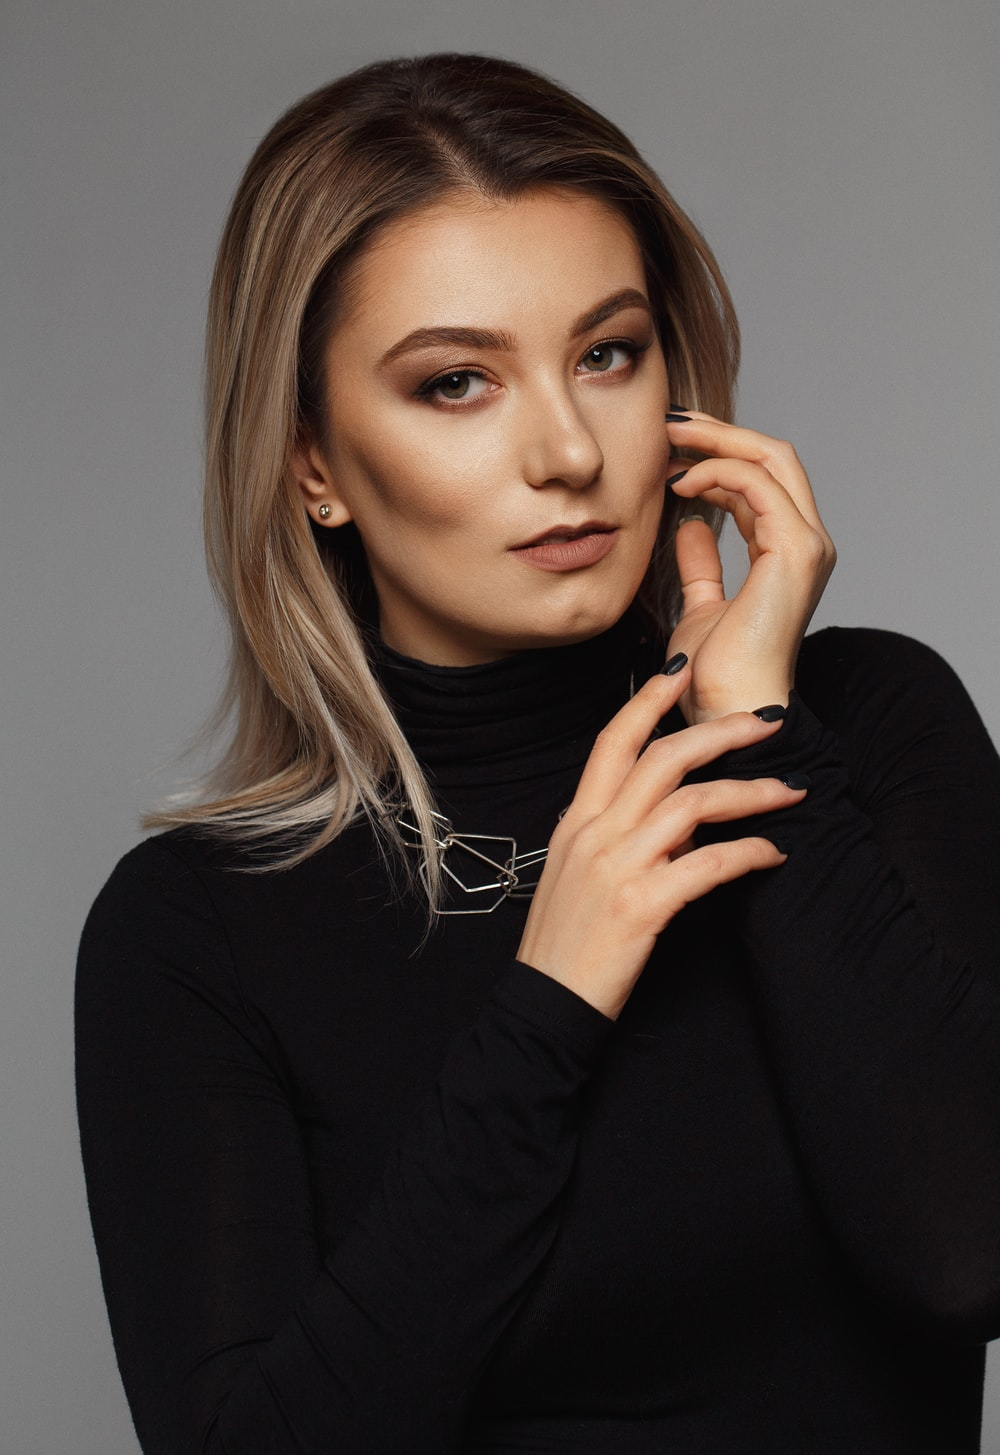 selective focus photography of woman in black turtle-neck long-sleeved shirt